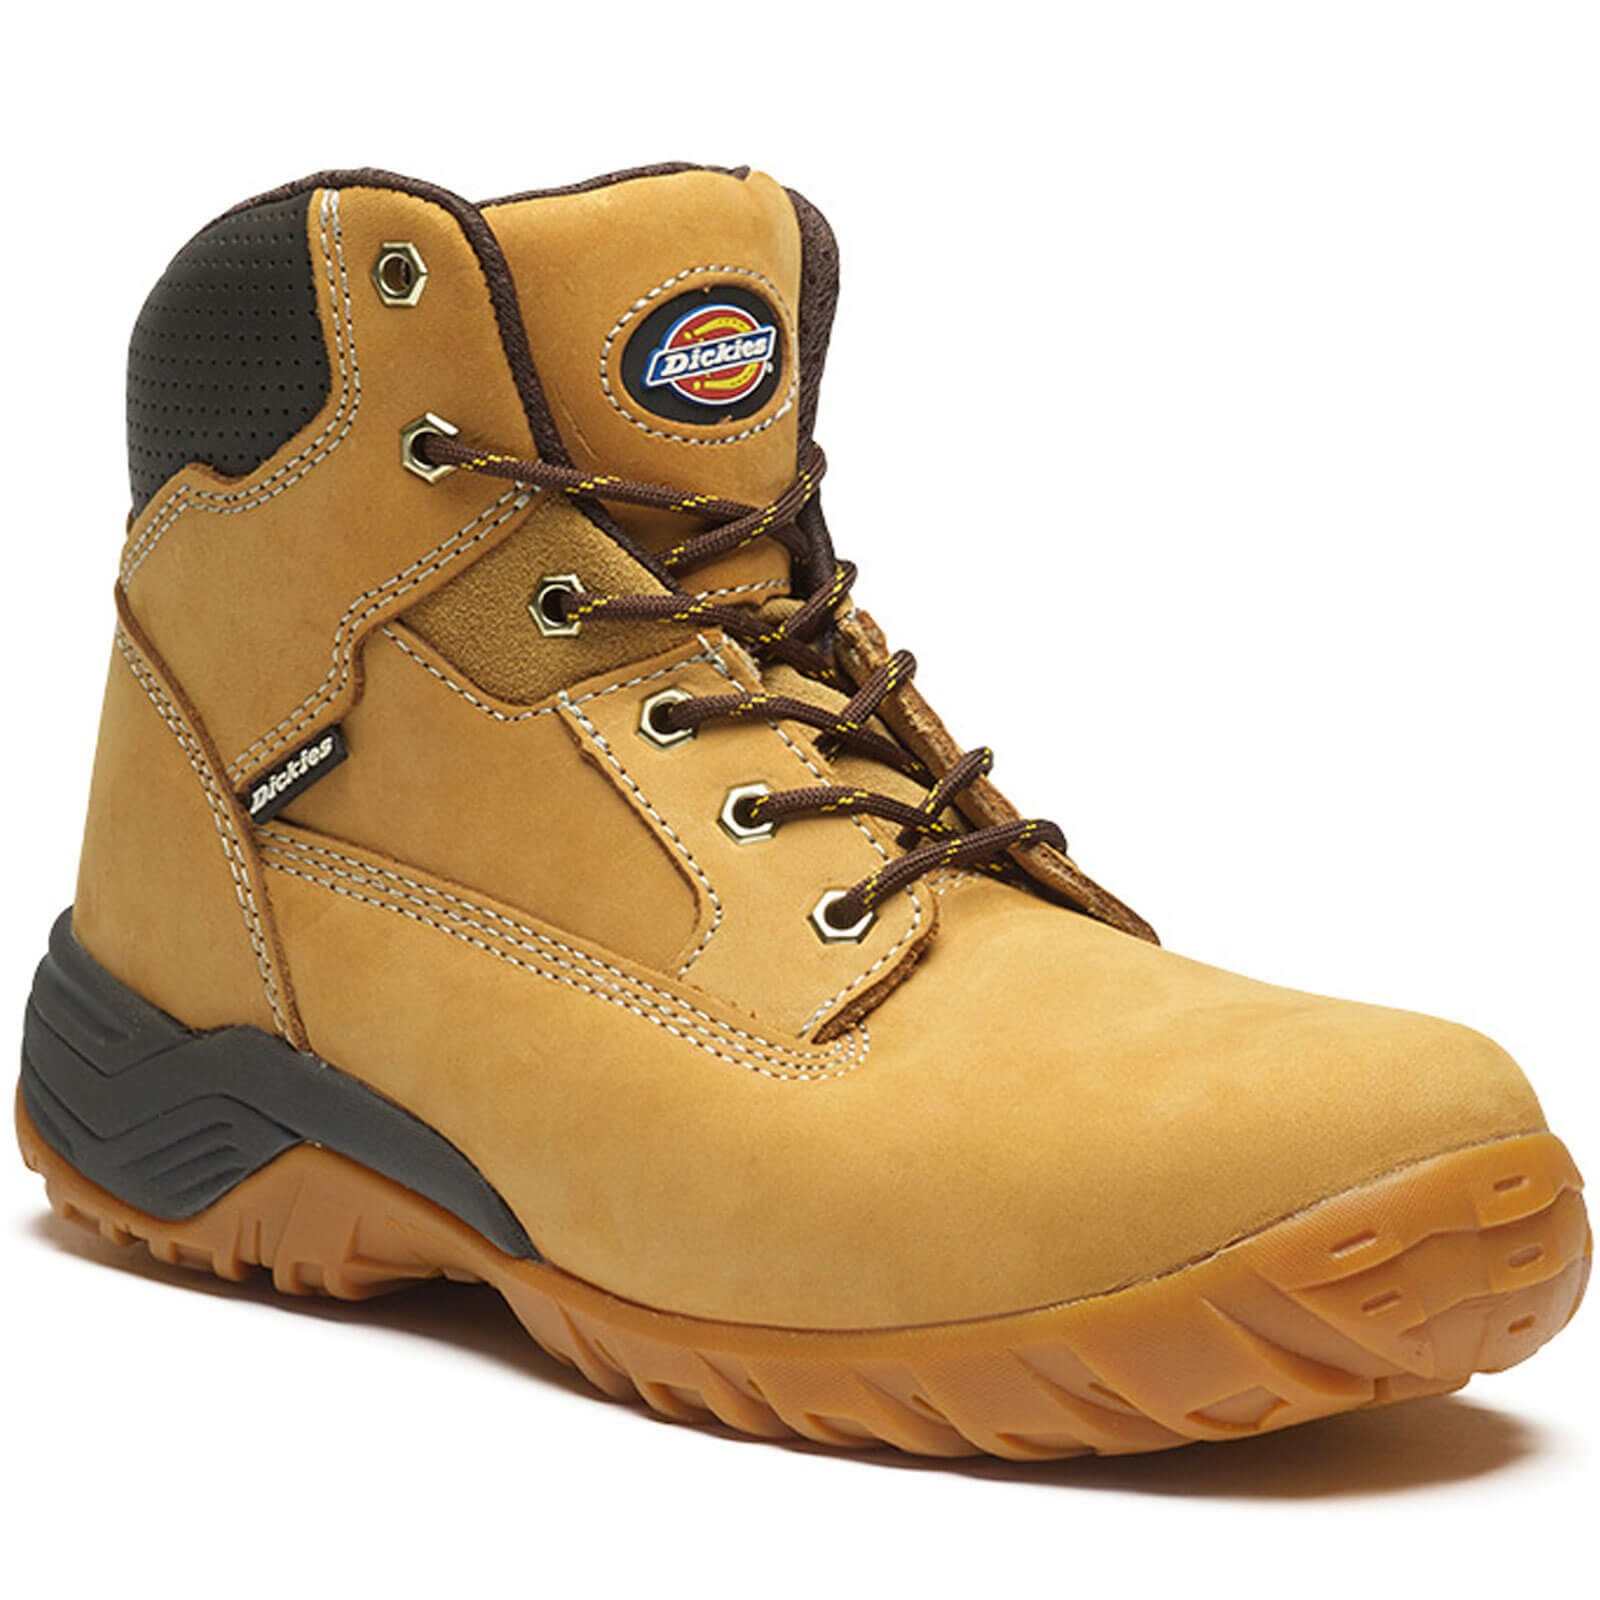 7bfe97993f3 Dickies Mens Graton Safety Boots